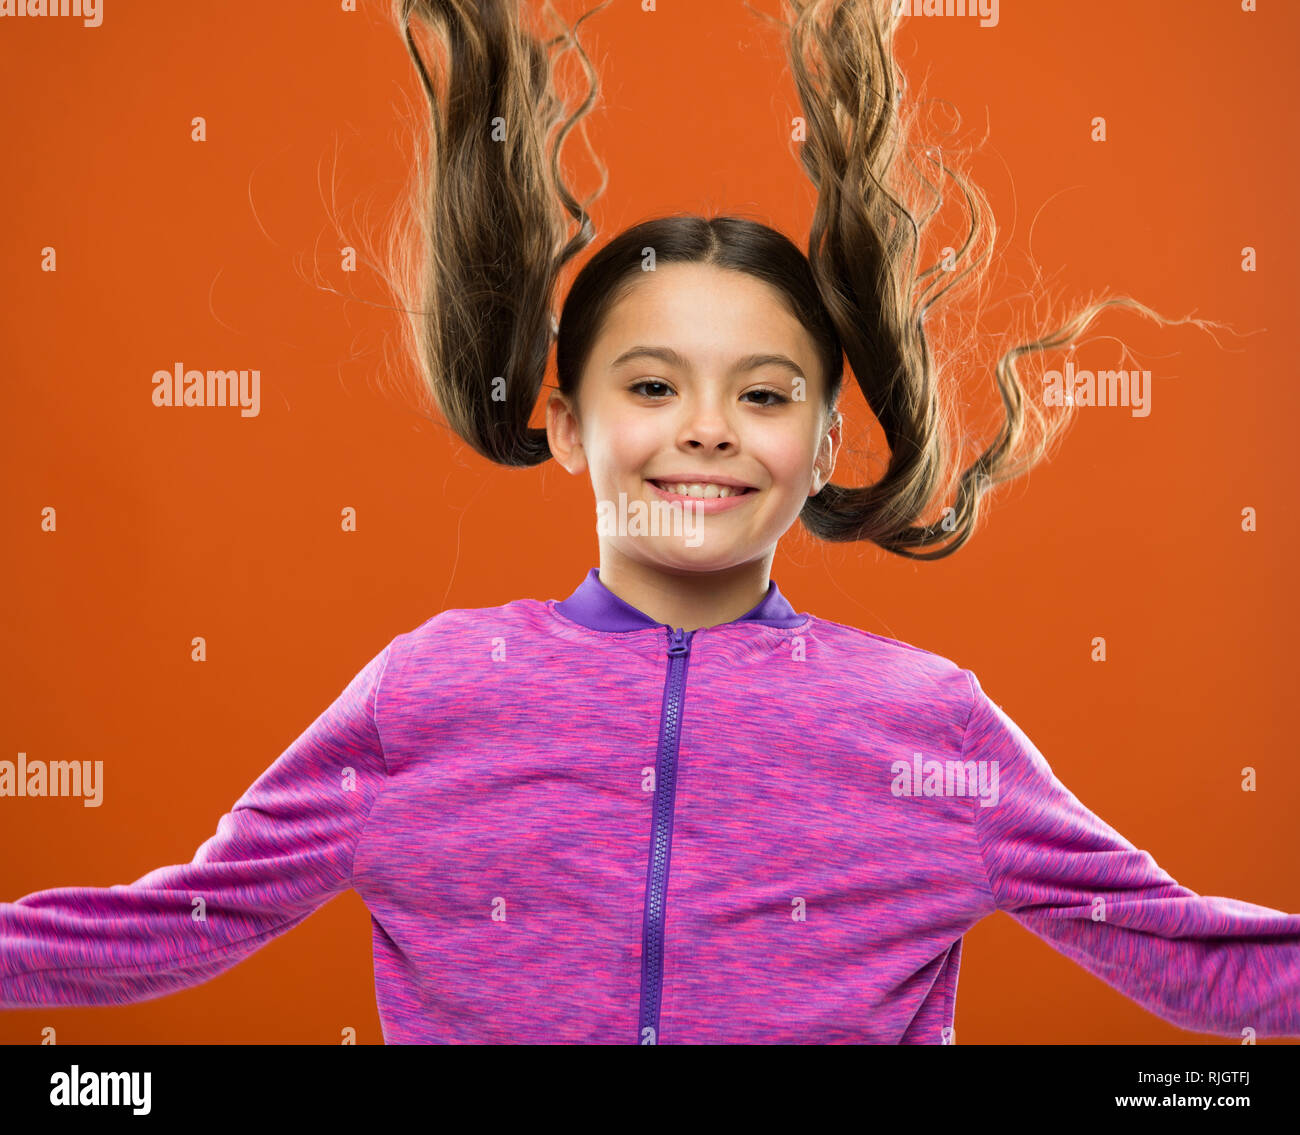 Strong And Healthy Hair Concept How To Treat Curly Hair Easy Tips Making Hairstyle For Kids Comfortable Hairstyle For Active Lifestyle Charming Beauty Girl Active Kid With Long Gorgeous Hair Stock Photo